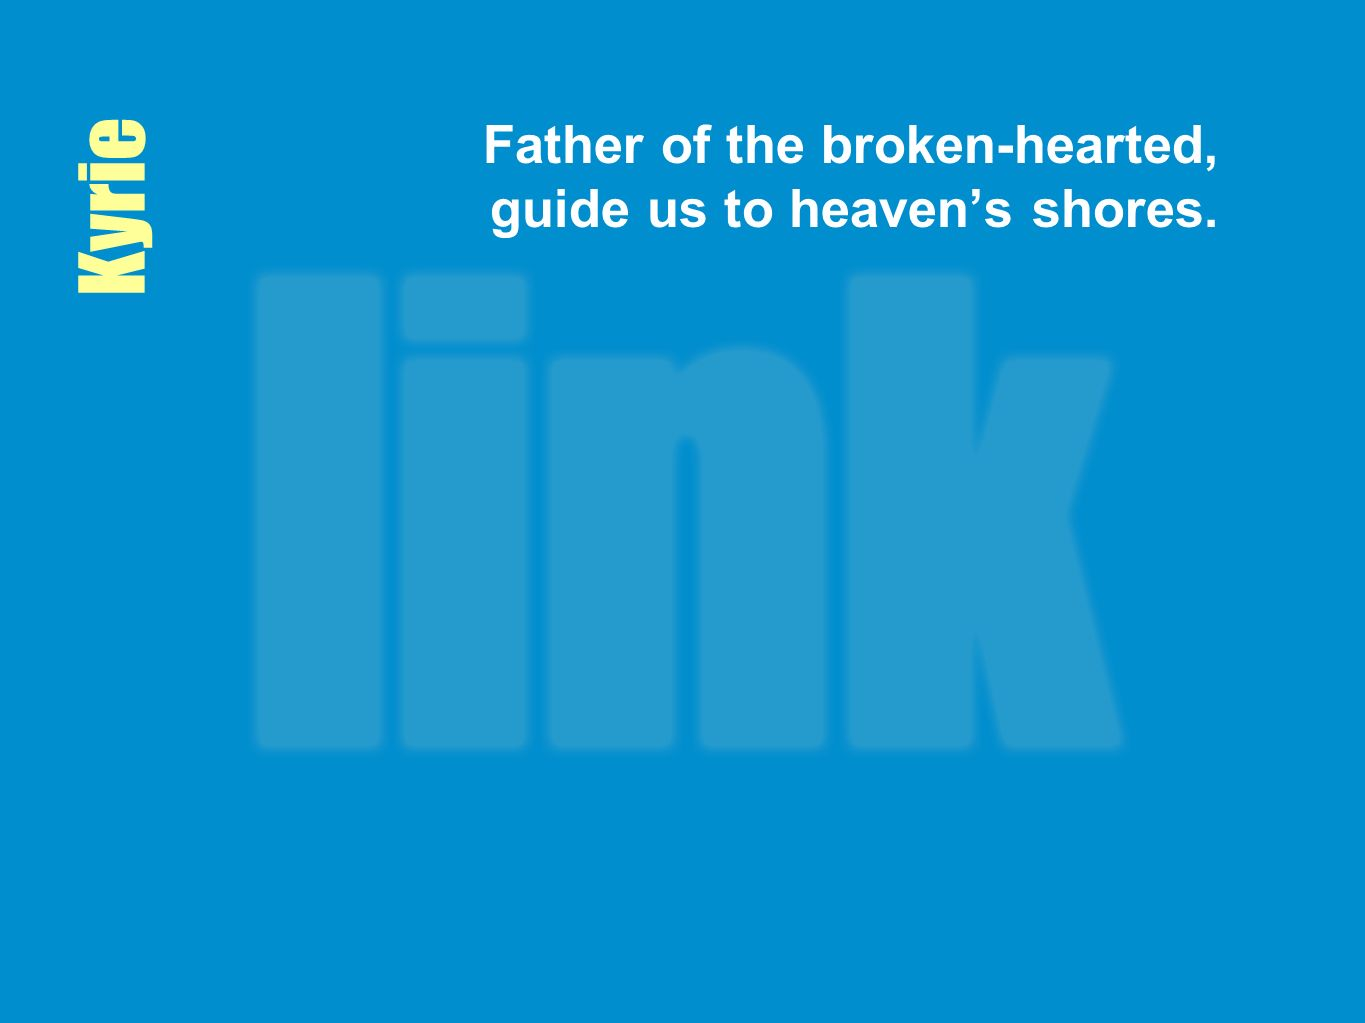 Father of the broken-hearted, guide us to heaven's shores.